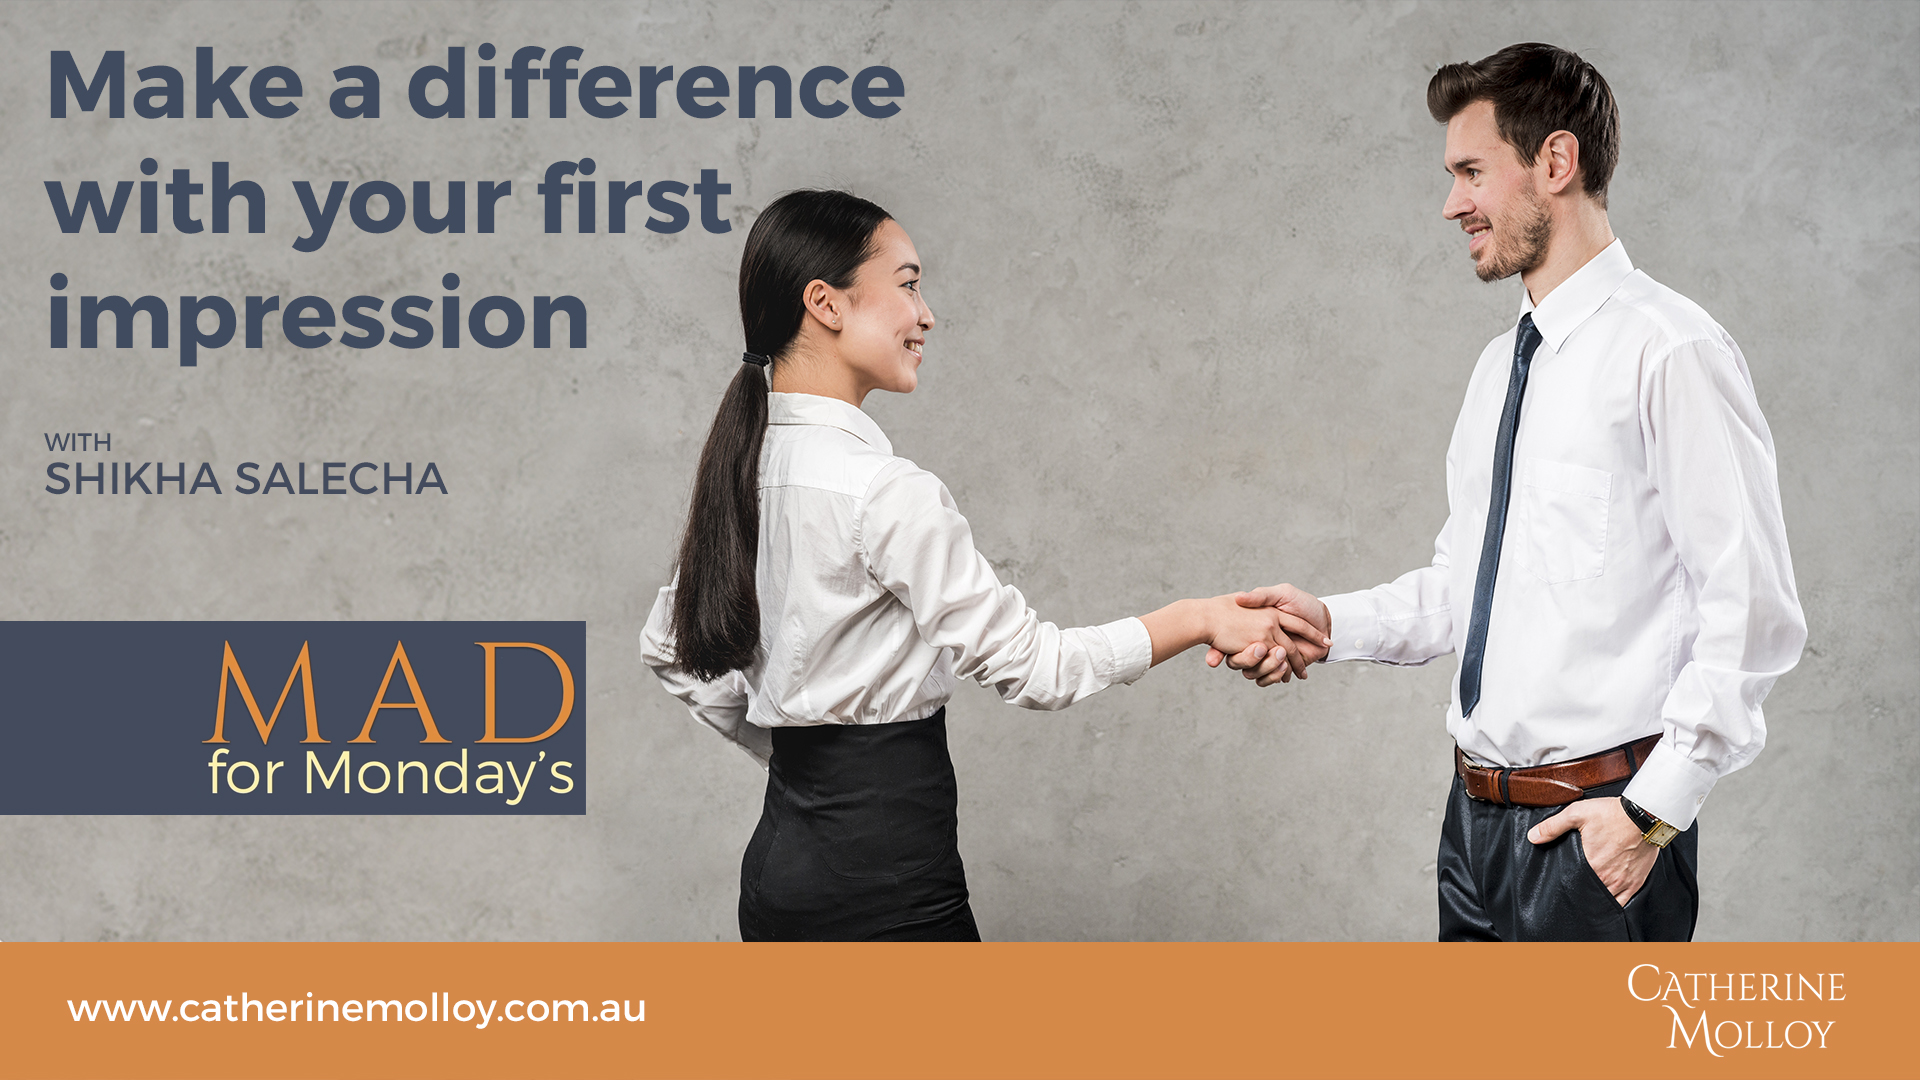 MAD for Monday's – Make a difference with your first impression